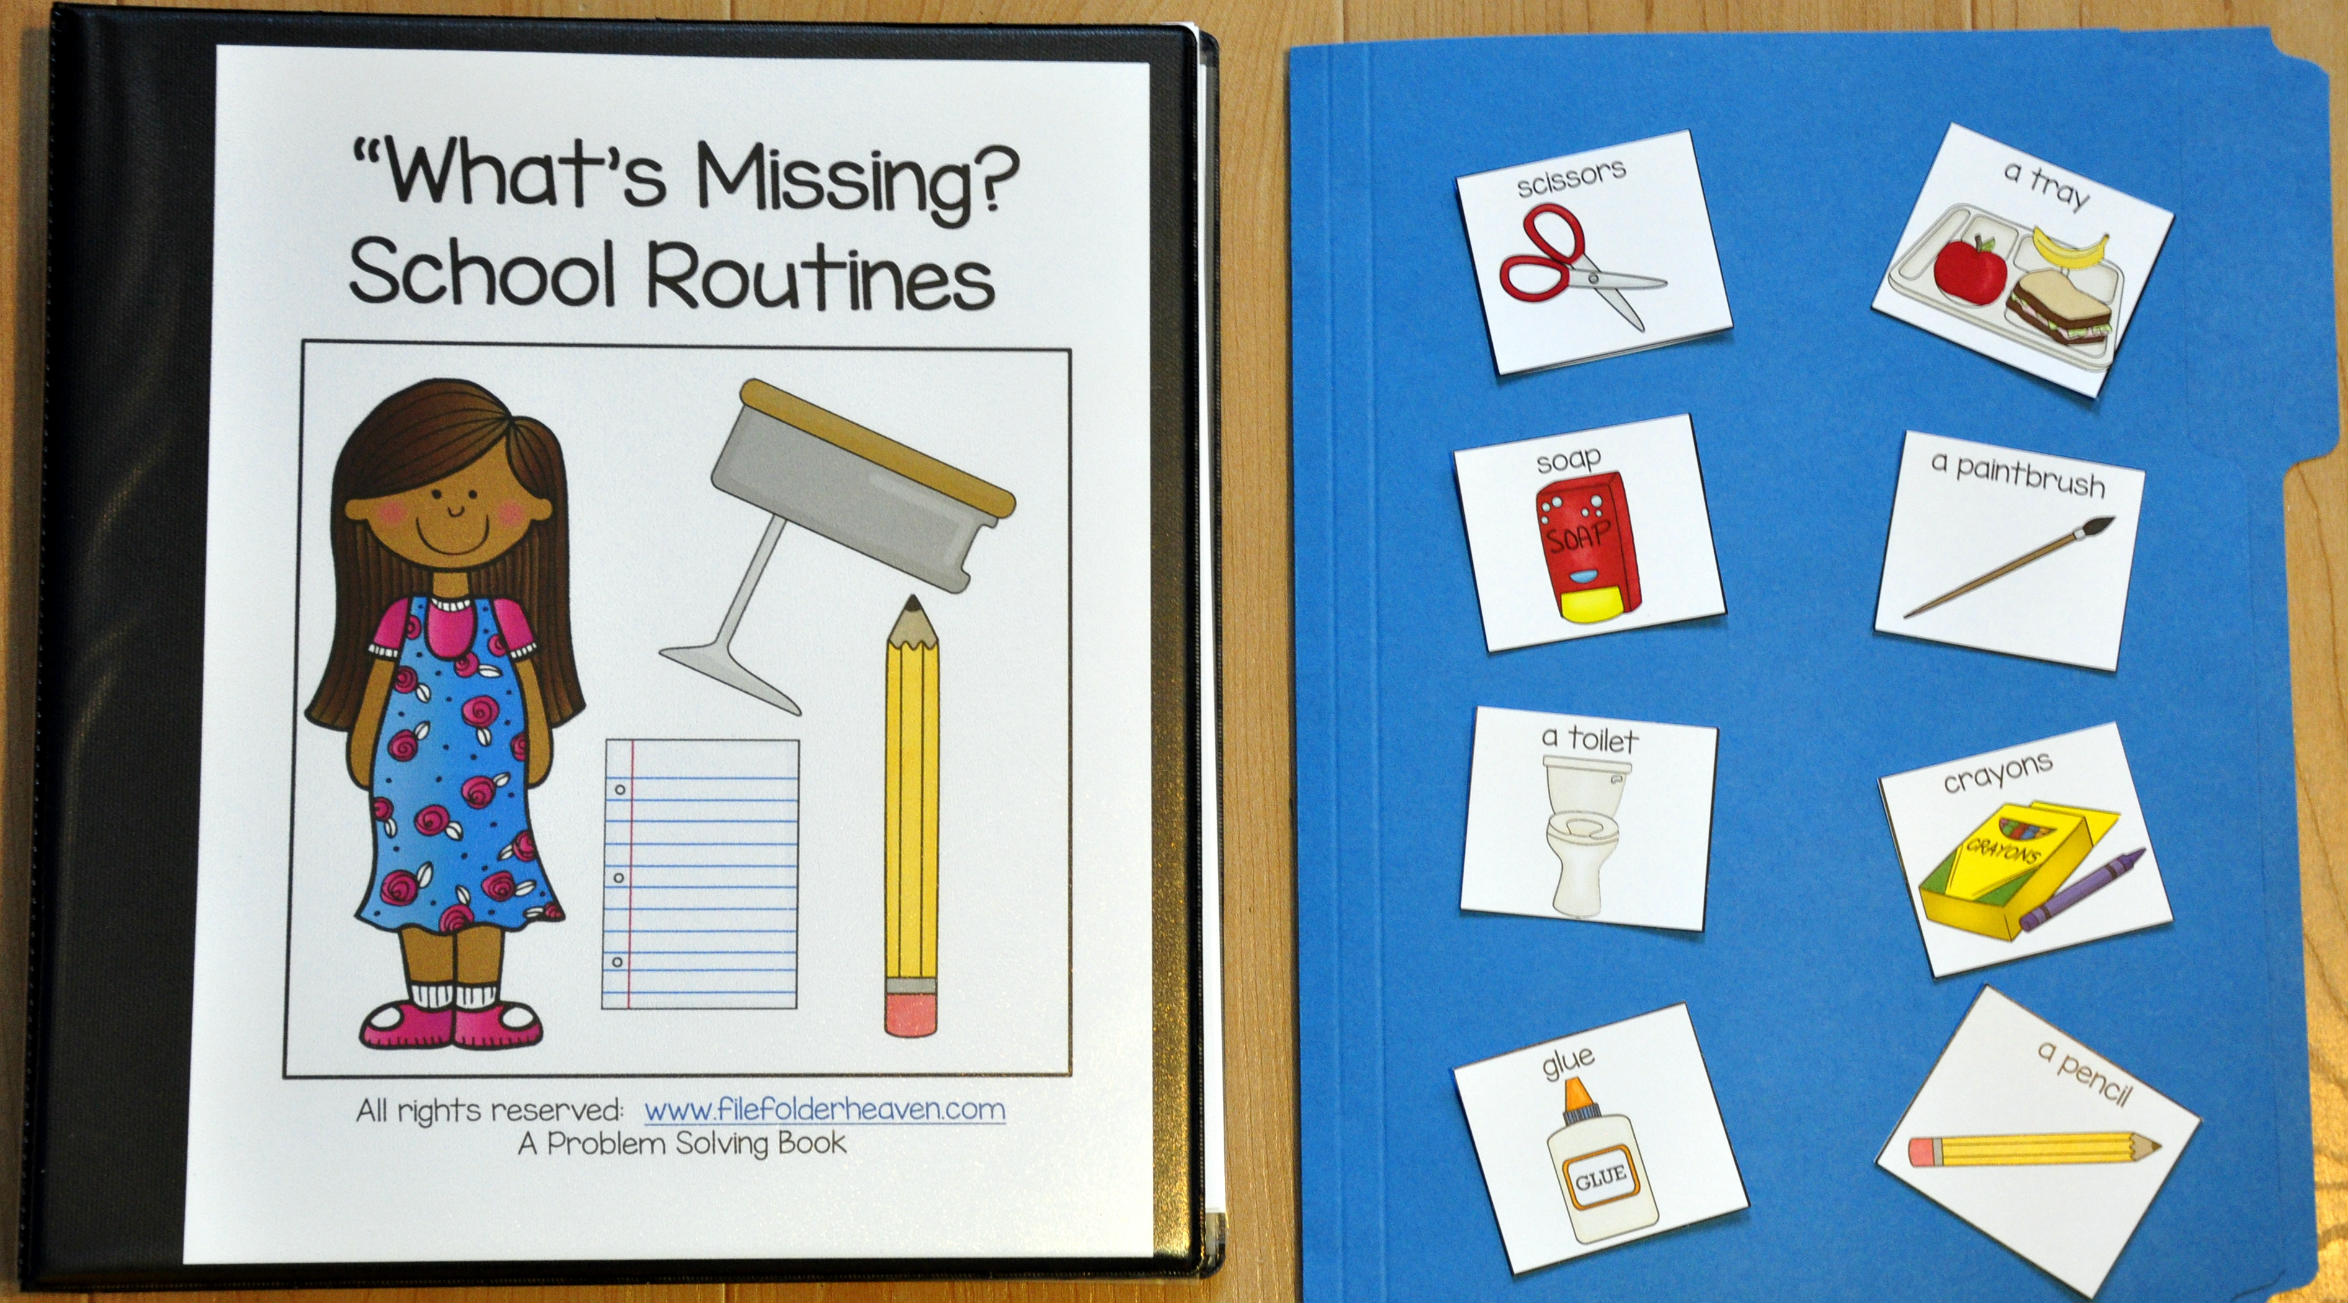 What's Missing? School Routines Adapted Book